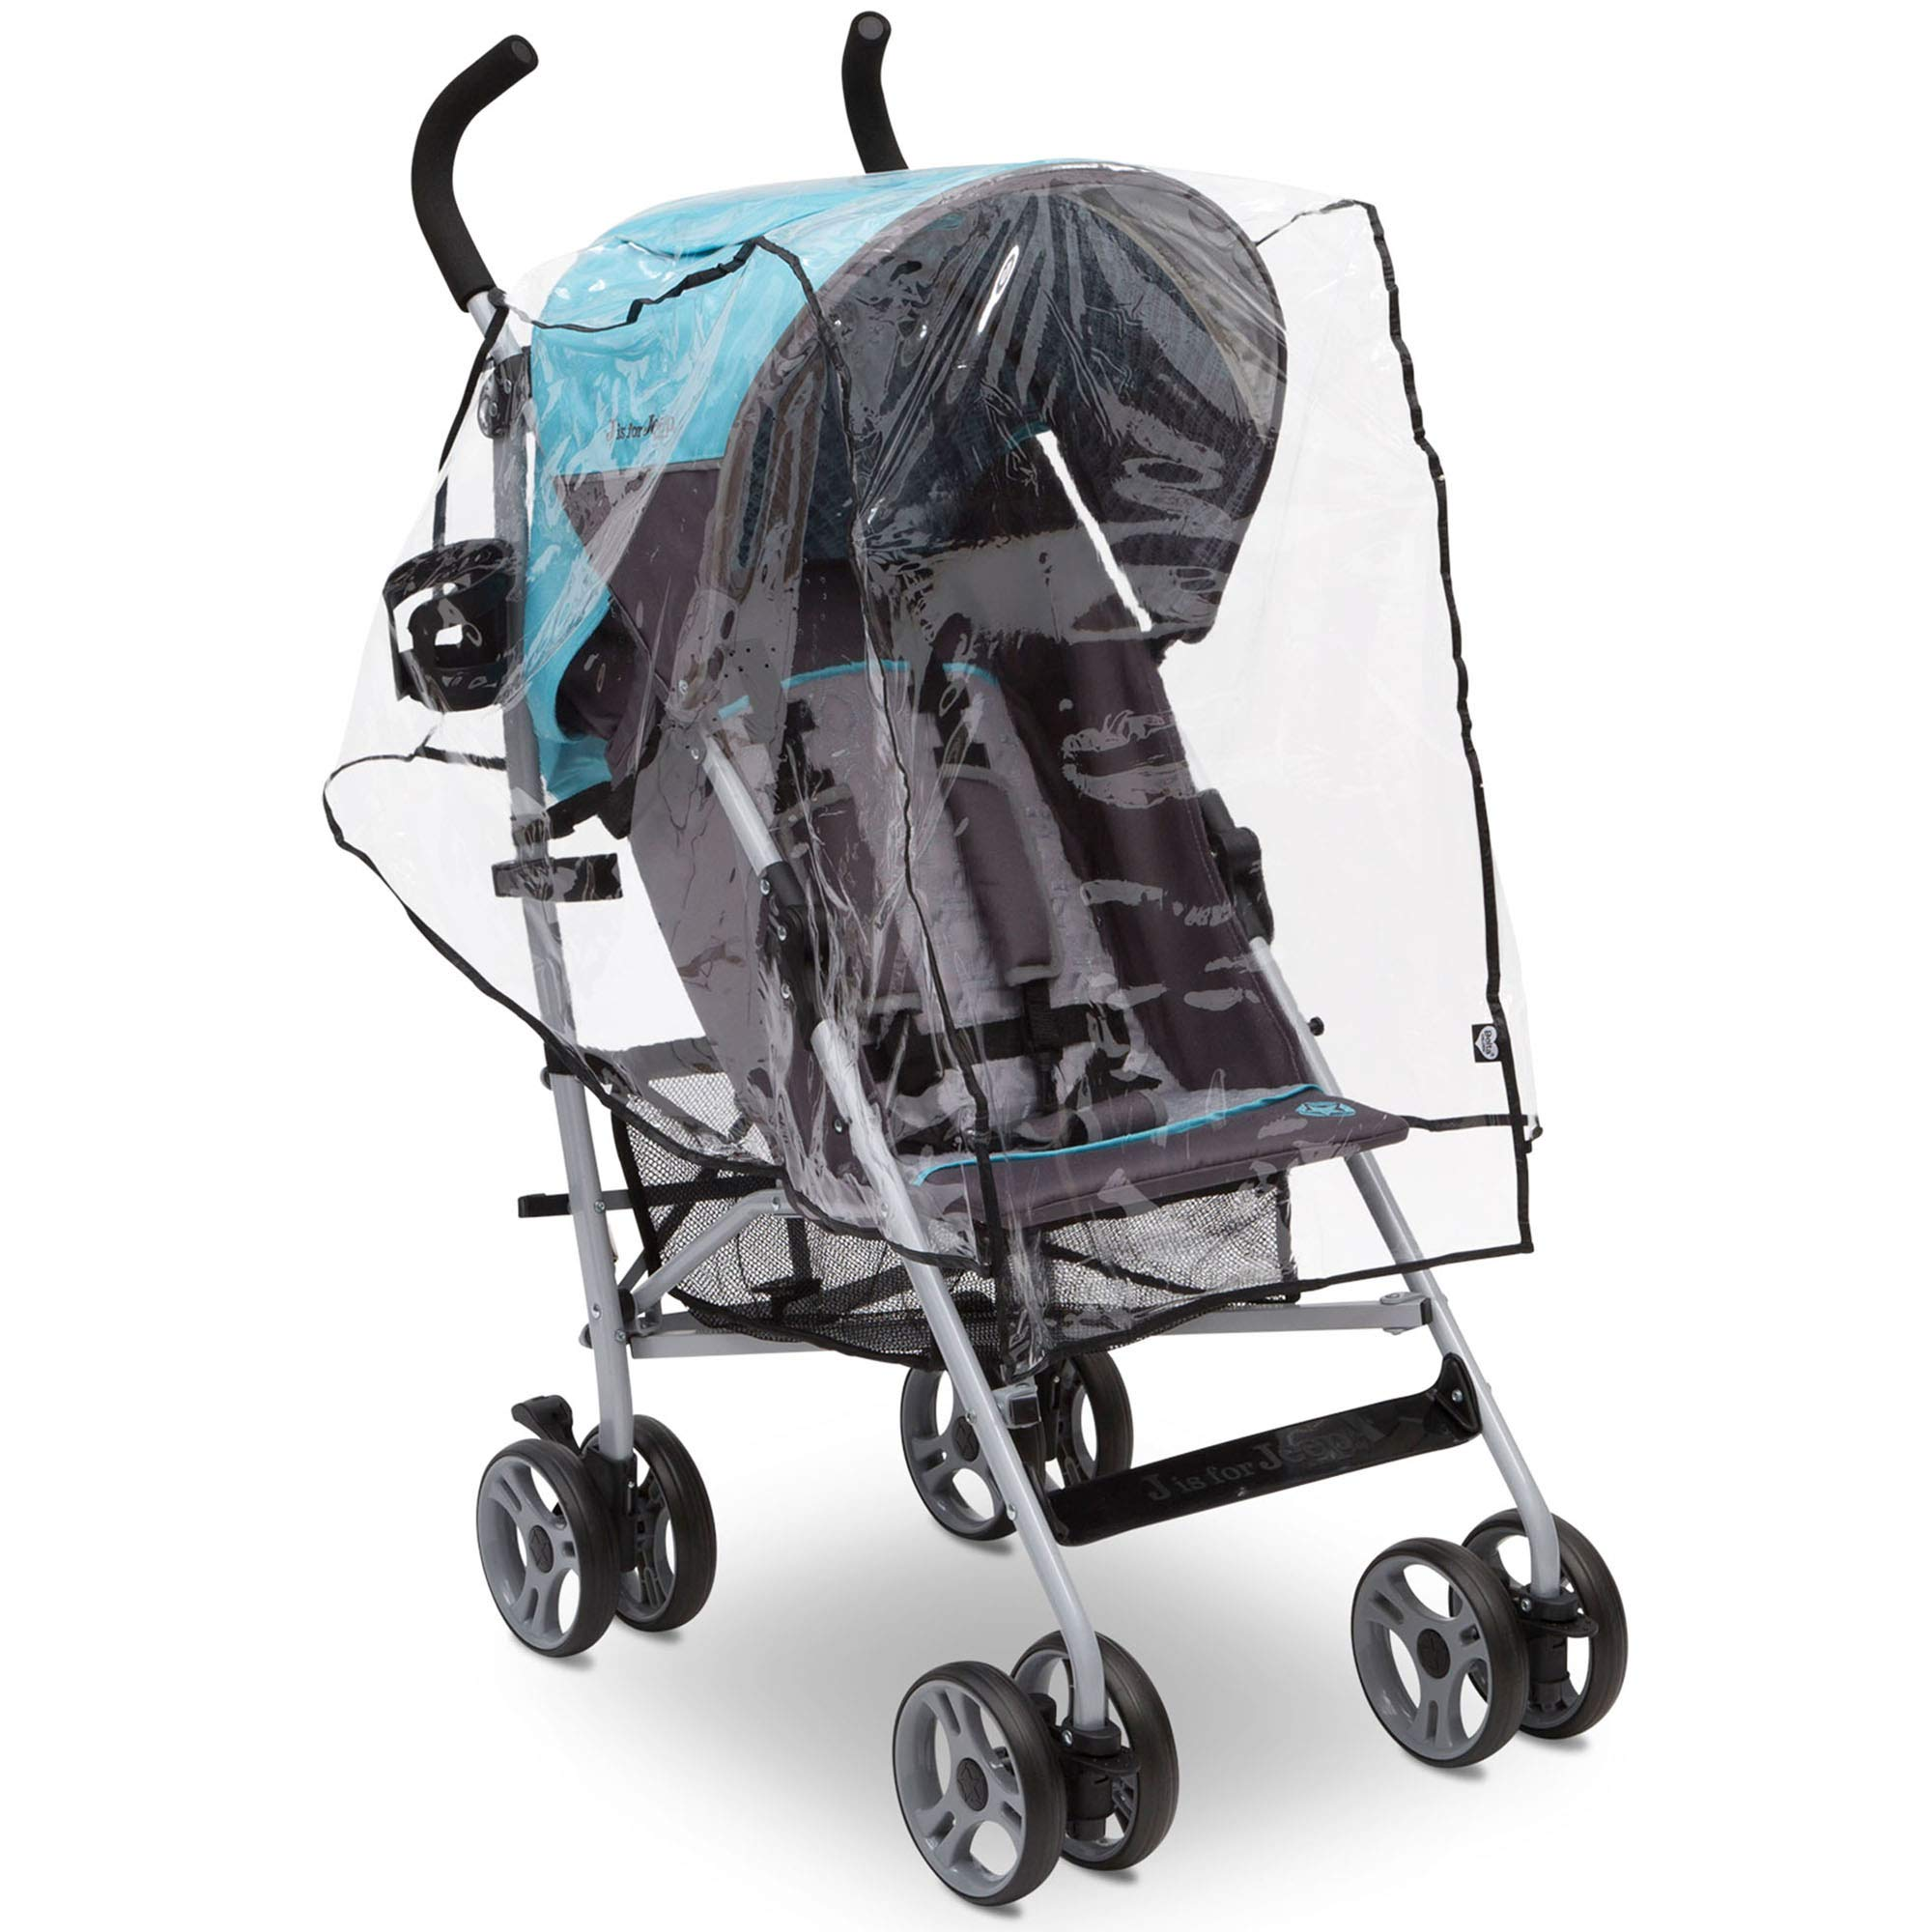 Delta Children Umbrella Stroller Rain Cover | Universal Size | Weather Shield Protects Your Baby from Rain, Wind, Snow, Sleet or Insects | Ventilated | Storage Pocket Included (Clear) by Delta Children (Image #2)